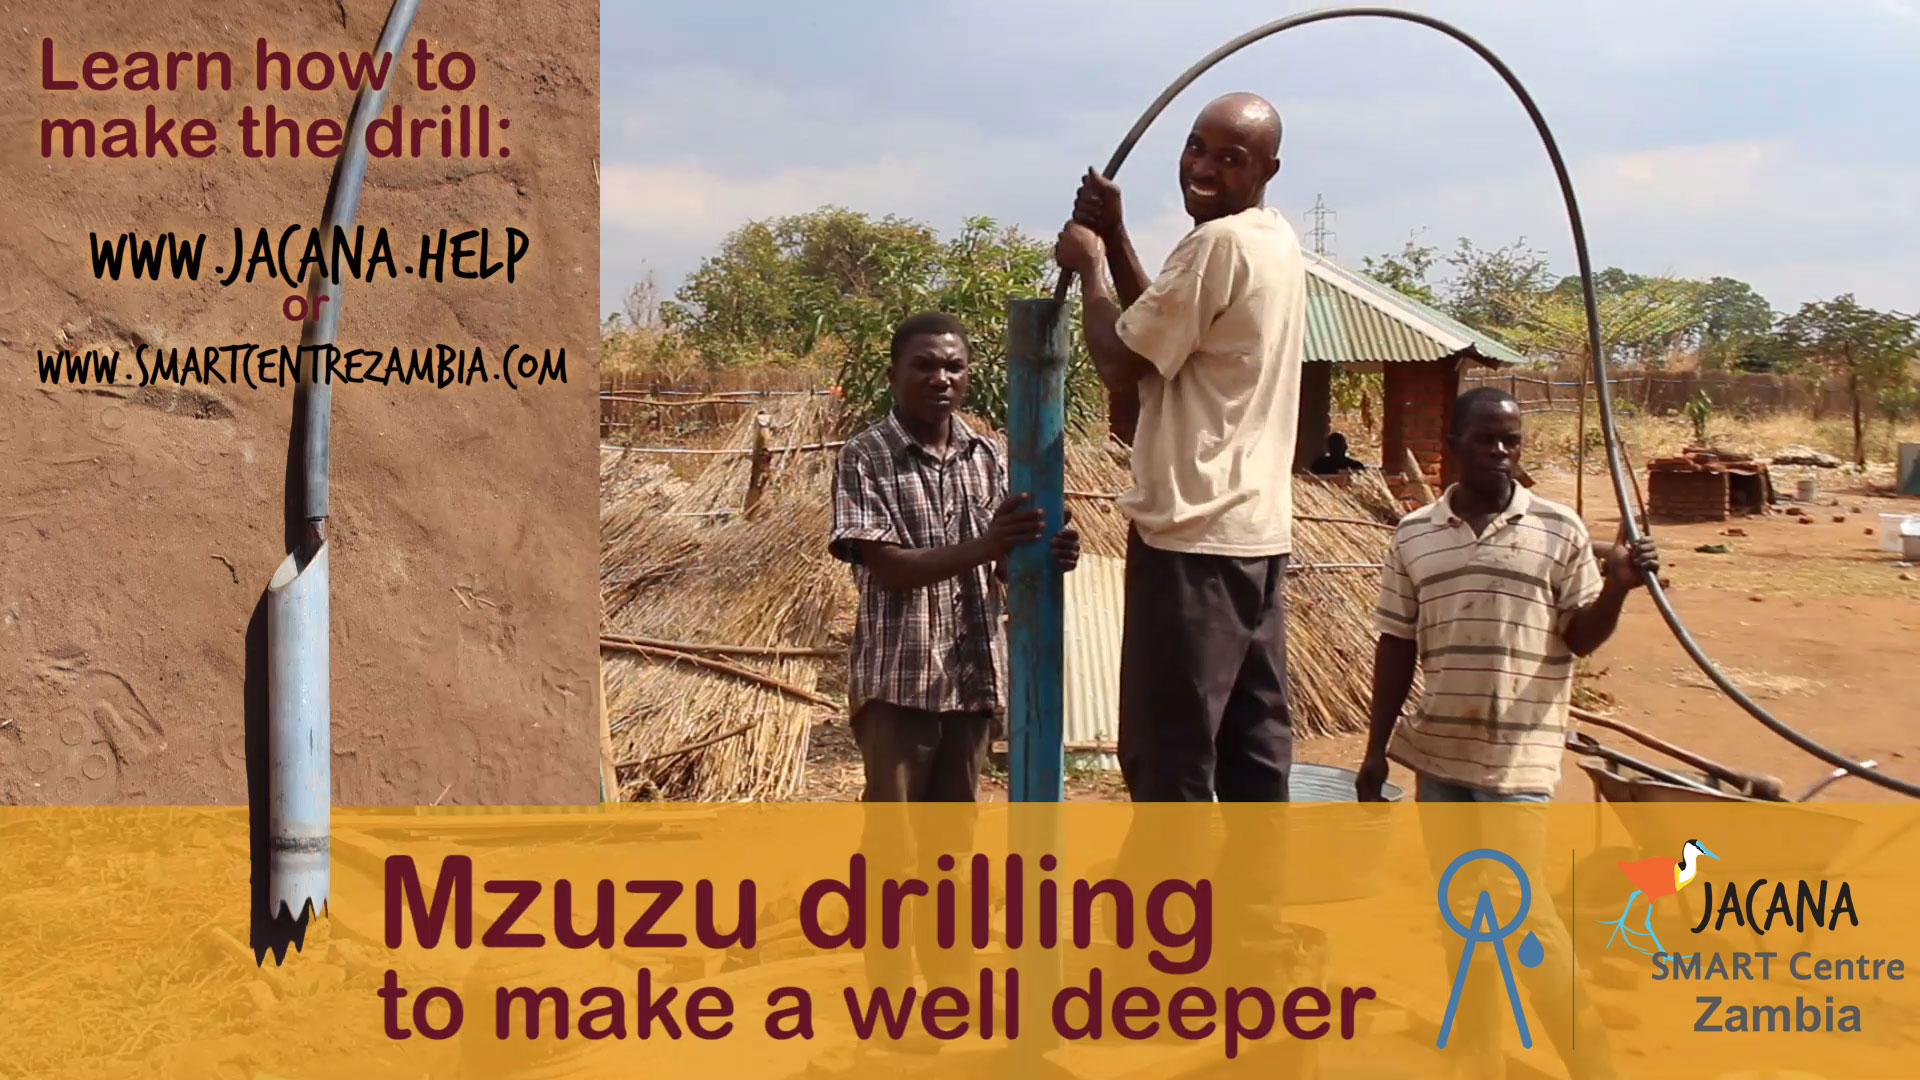 Muzuz drilling, making a well deeper